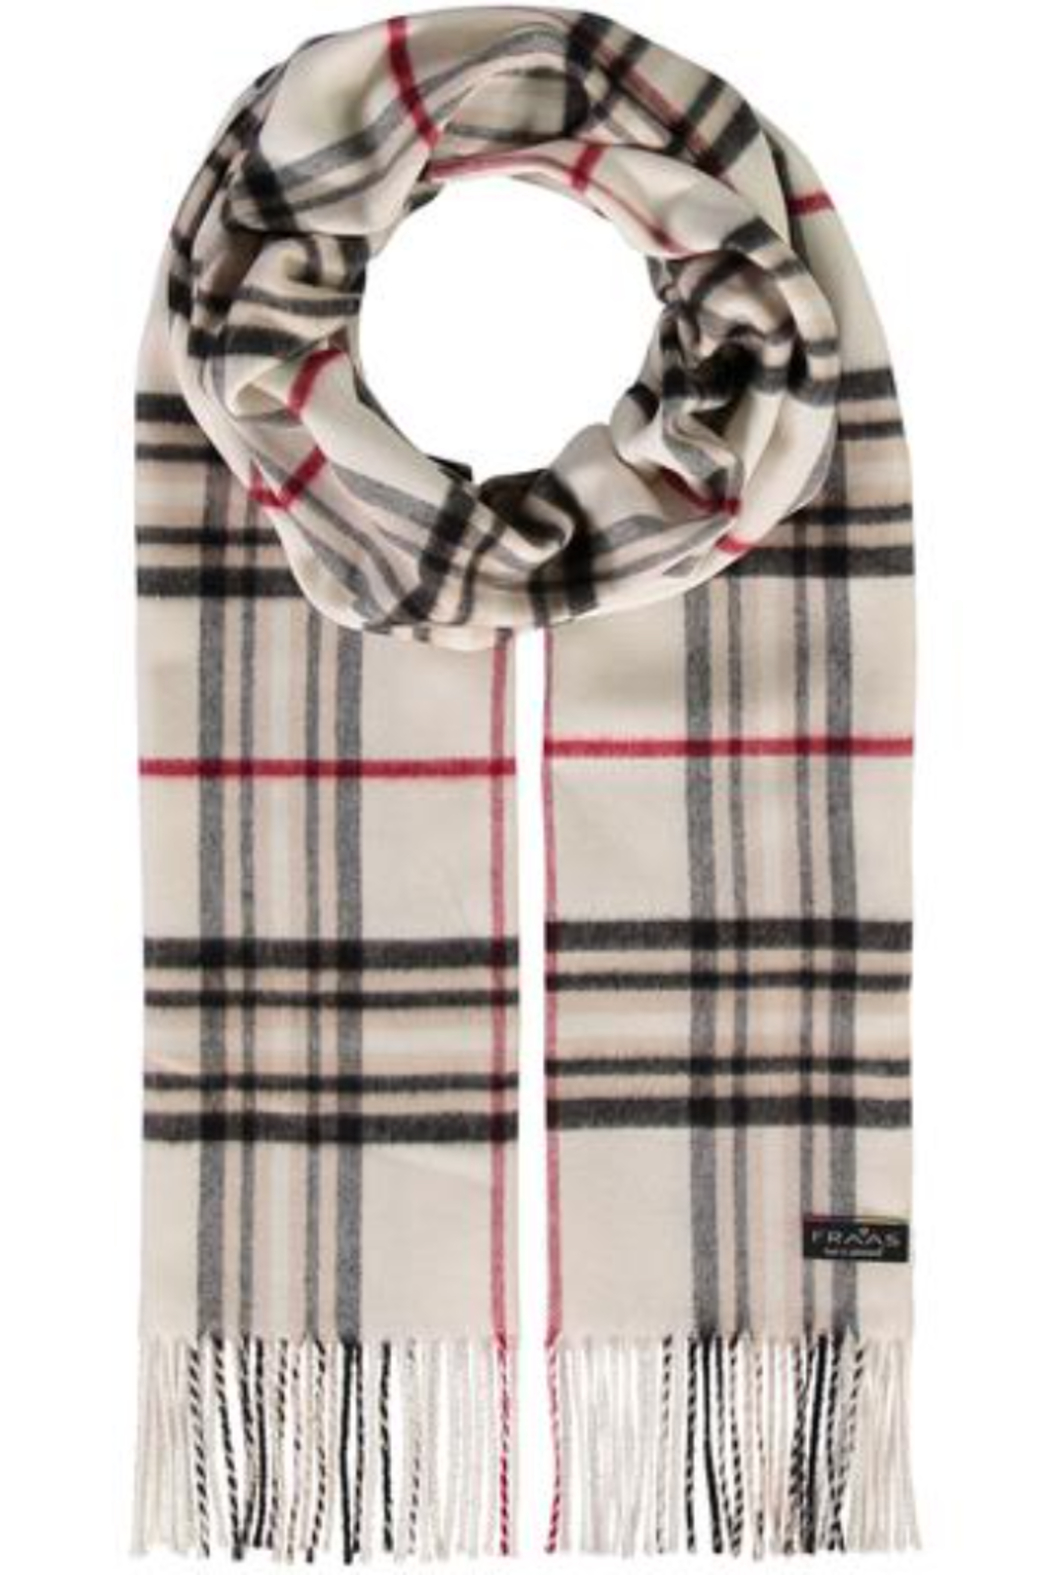 V Fraas Oversized plaid cashmink scarf - Main Image